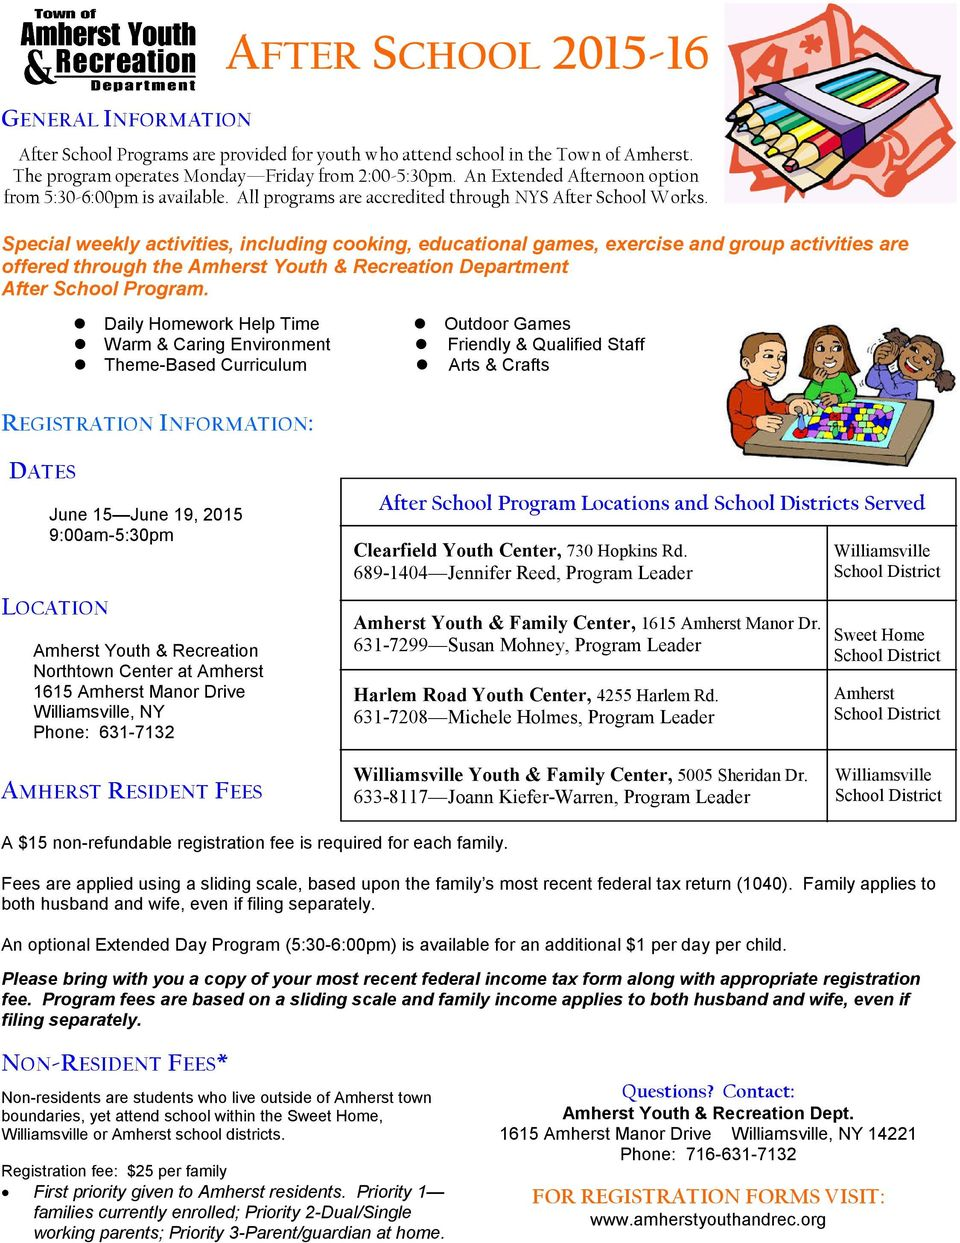 Special weekly activities, including cooking, educational games, exercise and group activities are offered through the Amherst Youth & Recreation Department After School Program.